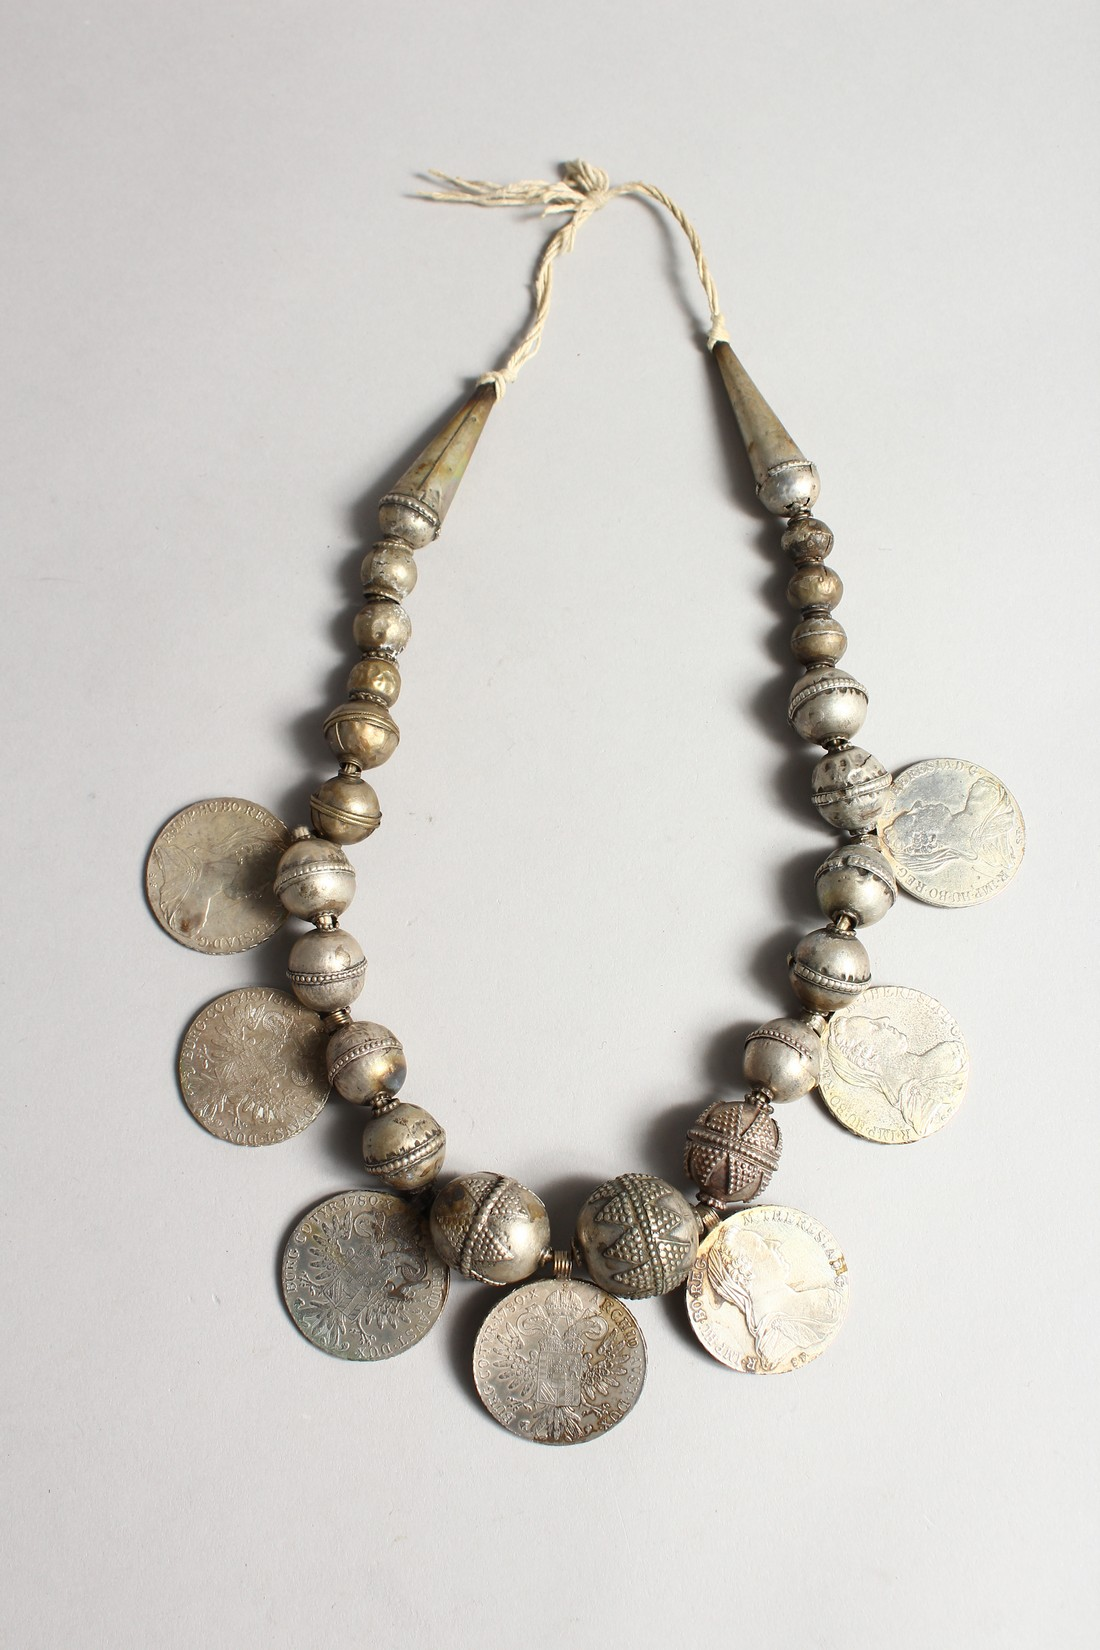 AN ISLAMIC SILVER NECKLACE with seven coins. - Image 2 of 2